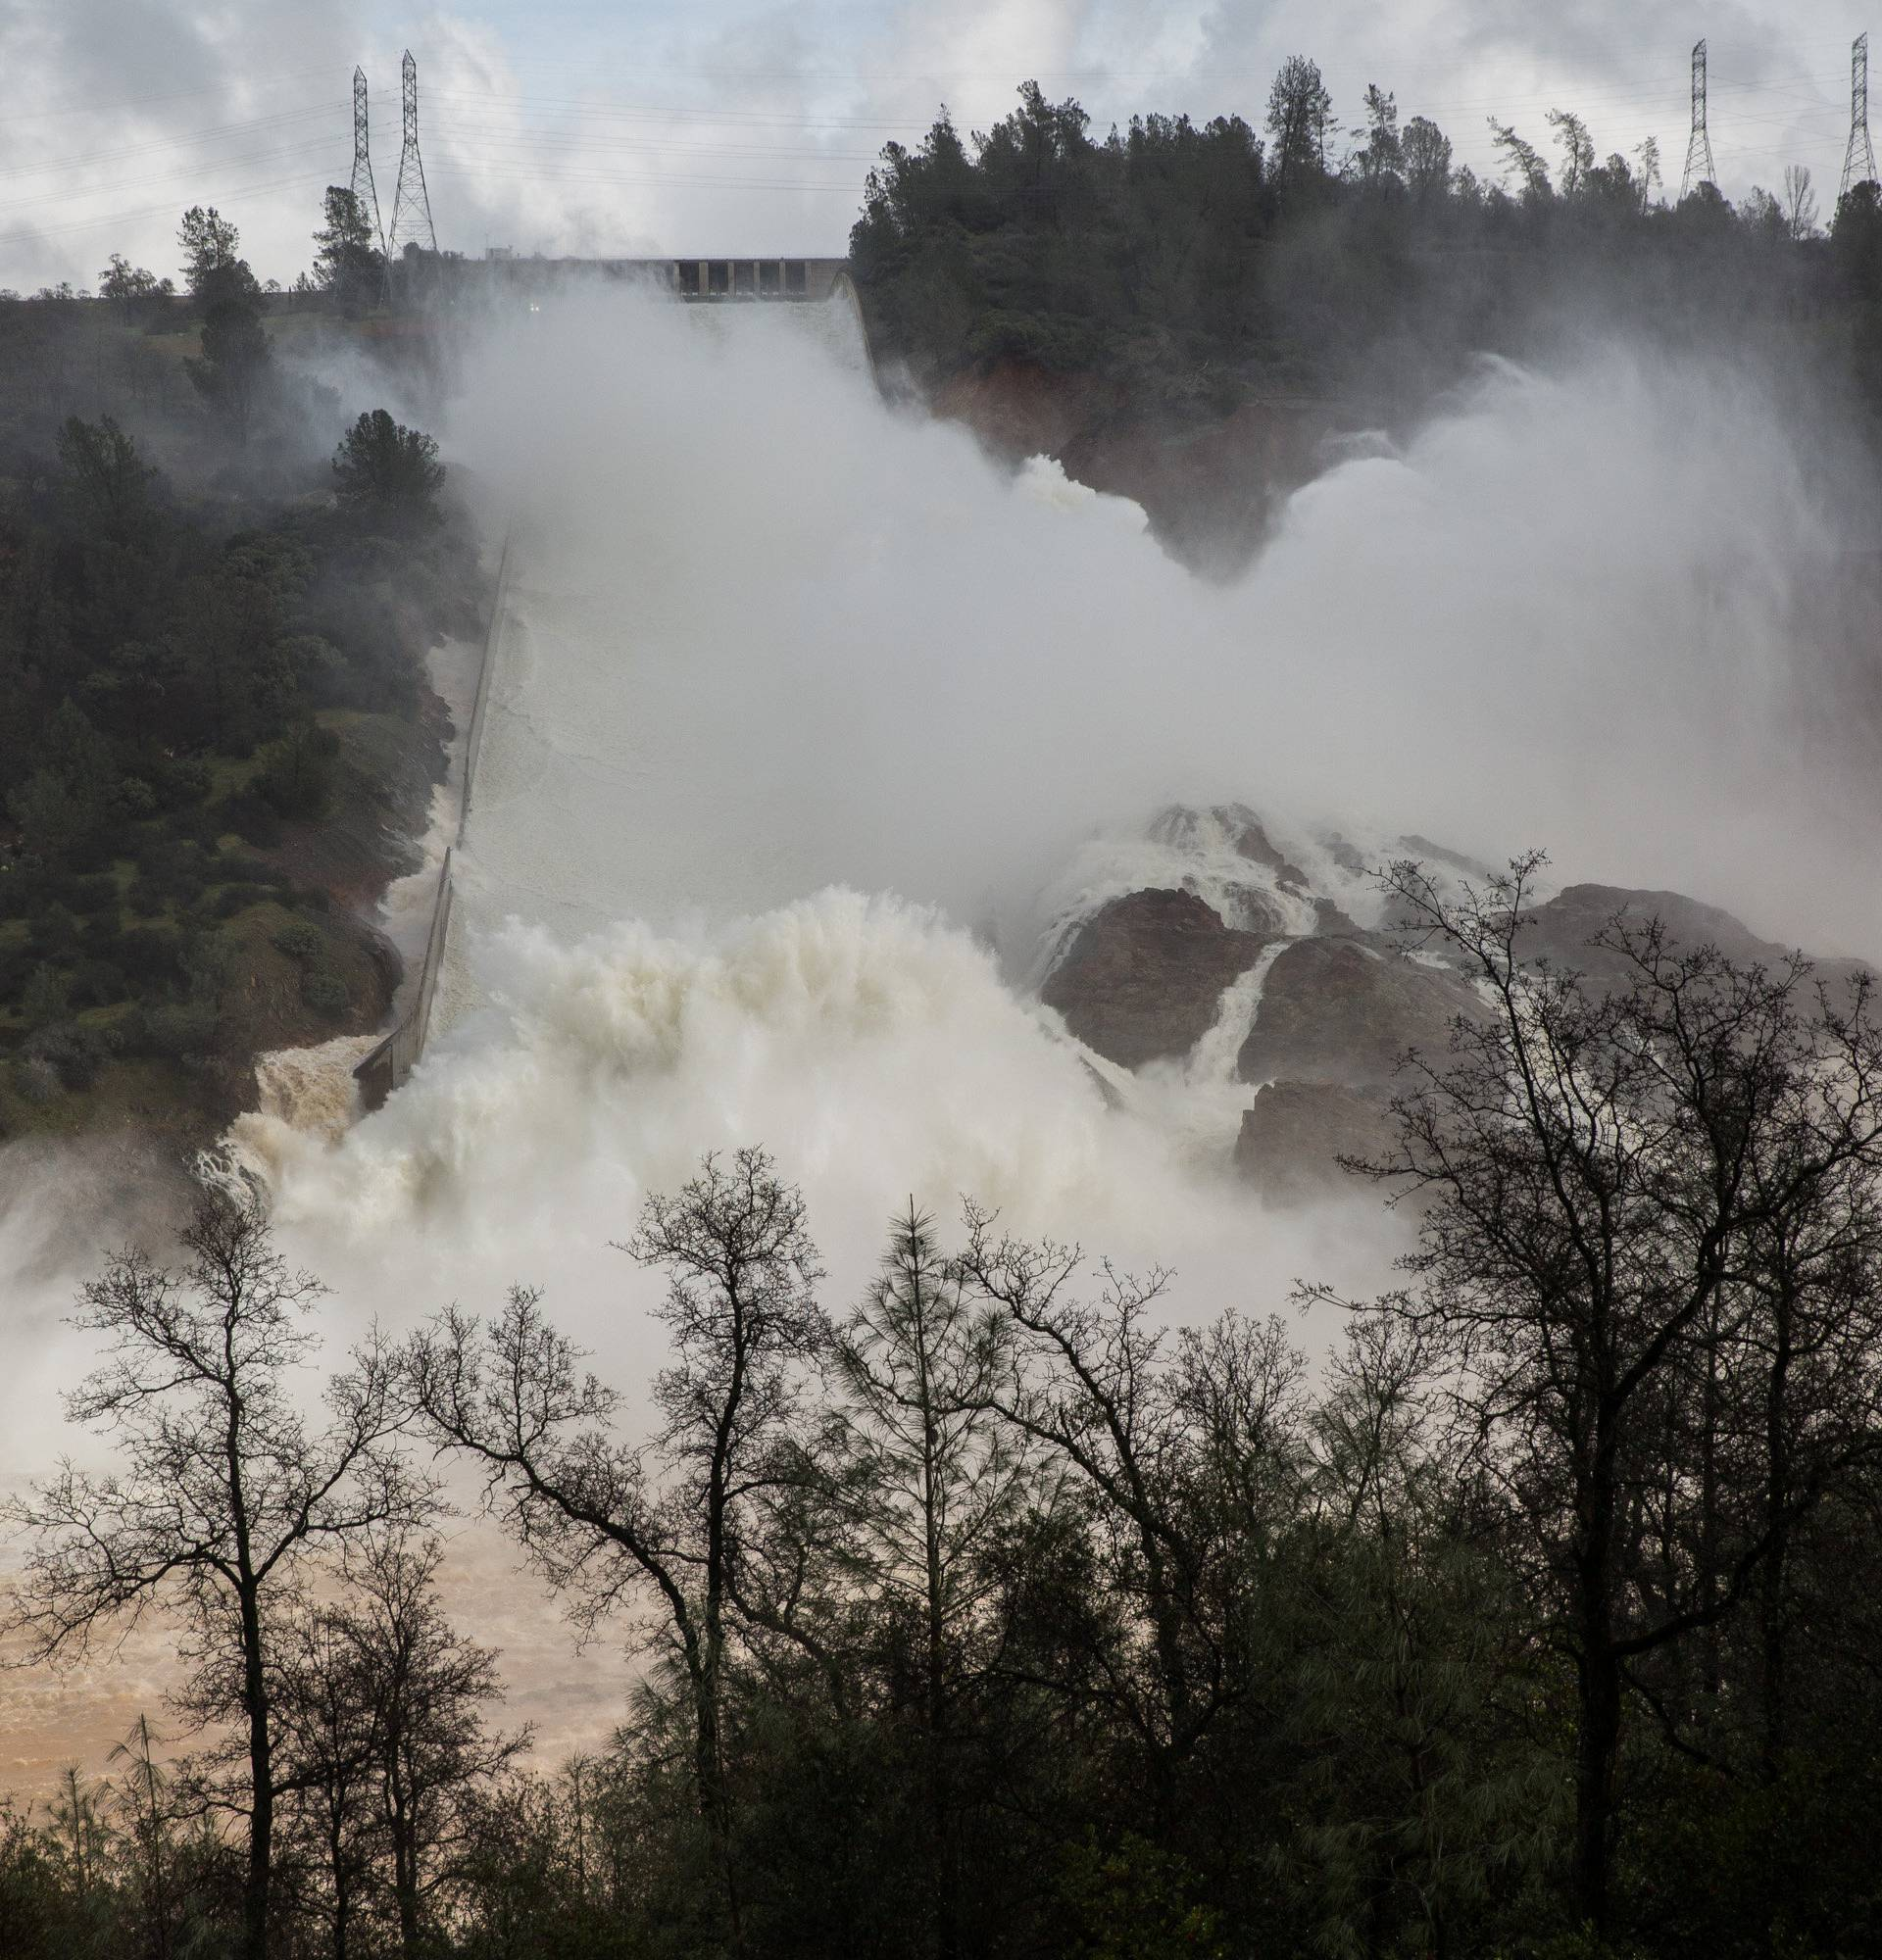 65,000 cfs of water flows through a damaged spillway on the Oroville Dam in Oroville, California